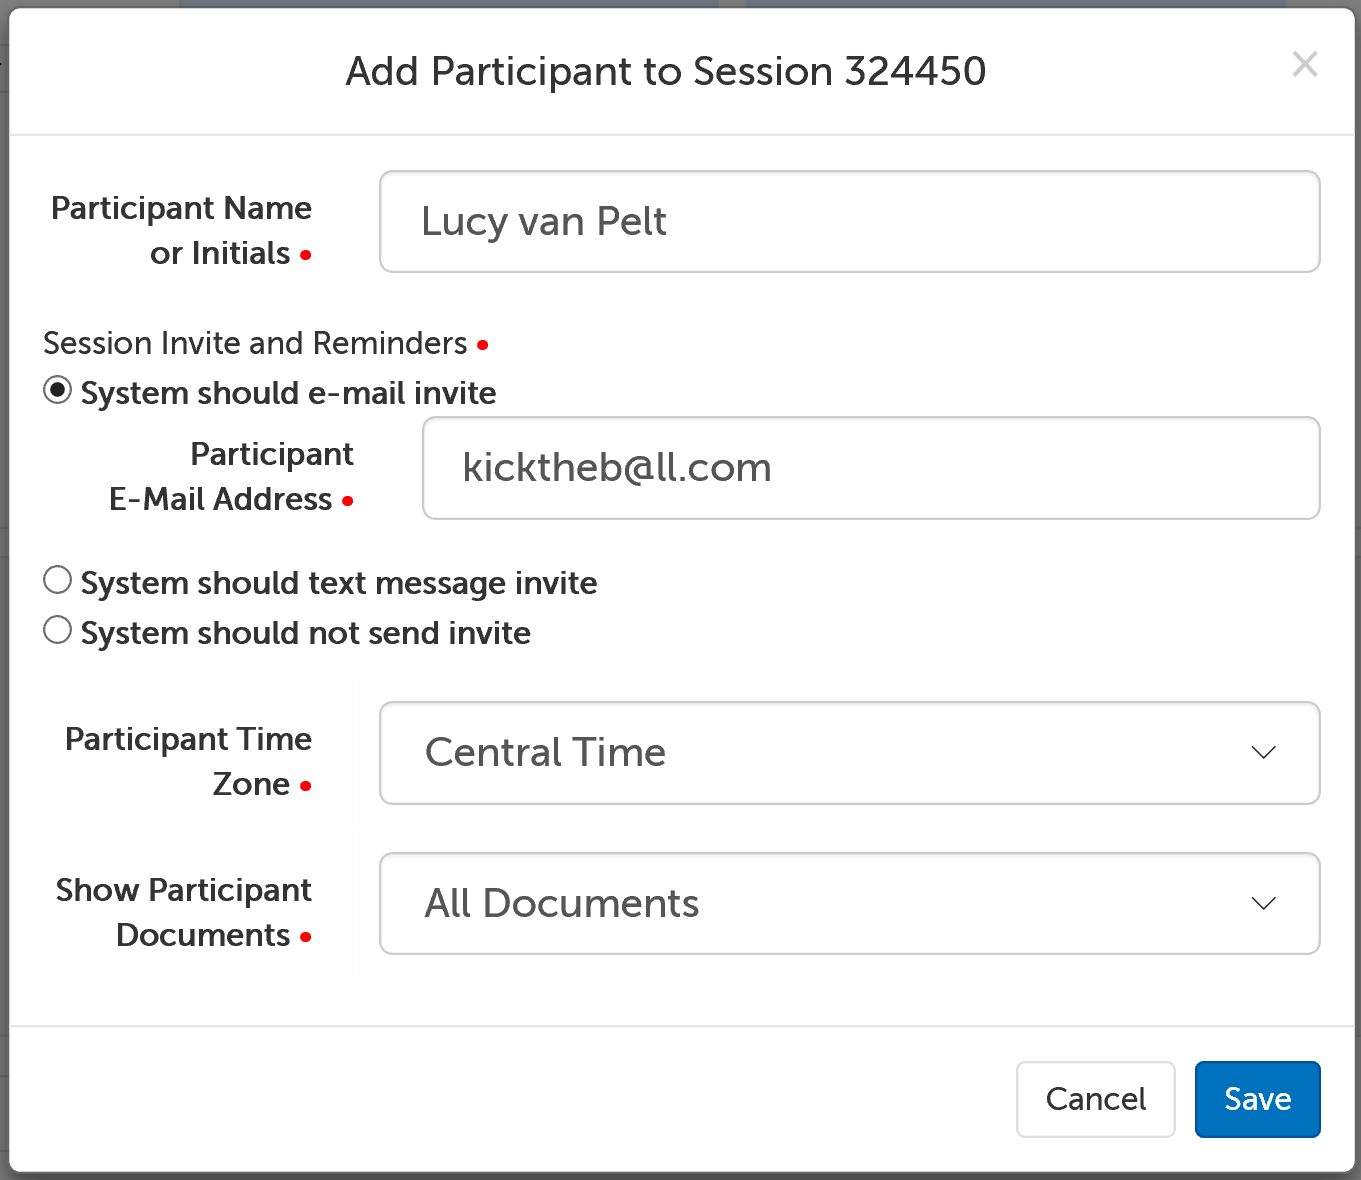 Screencap showing the Add Session Participant form